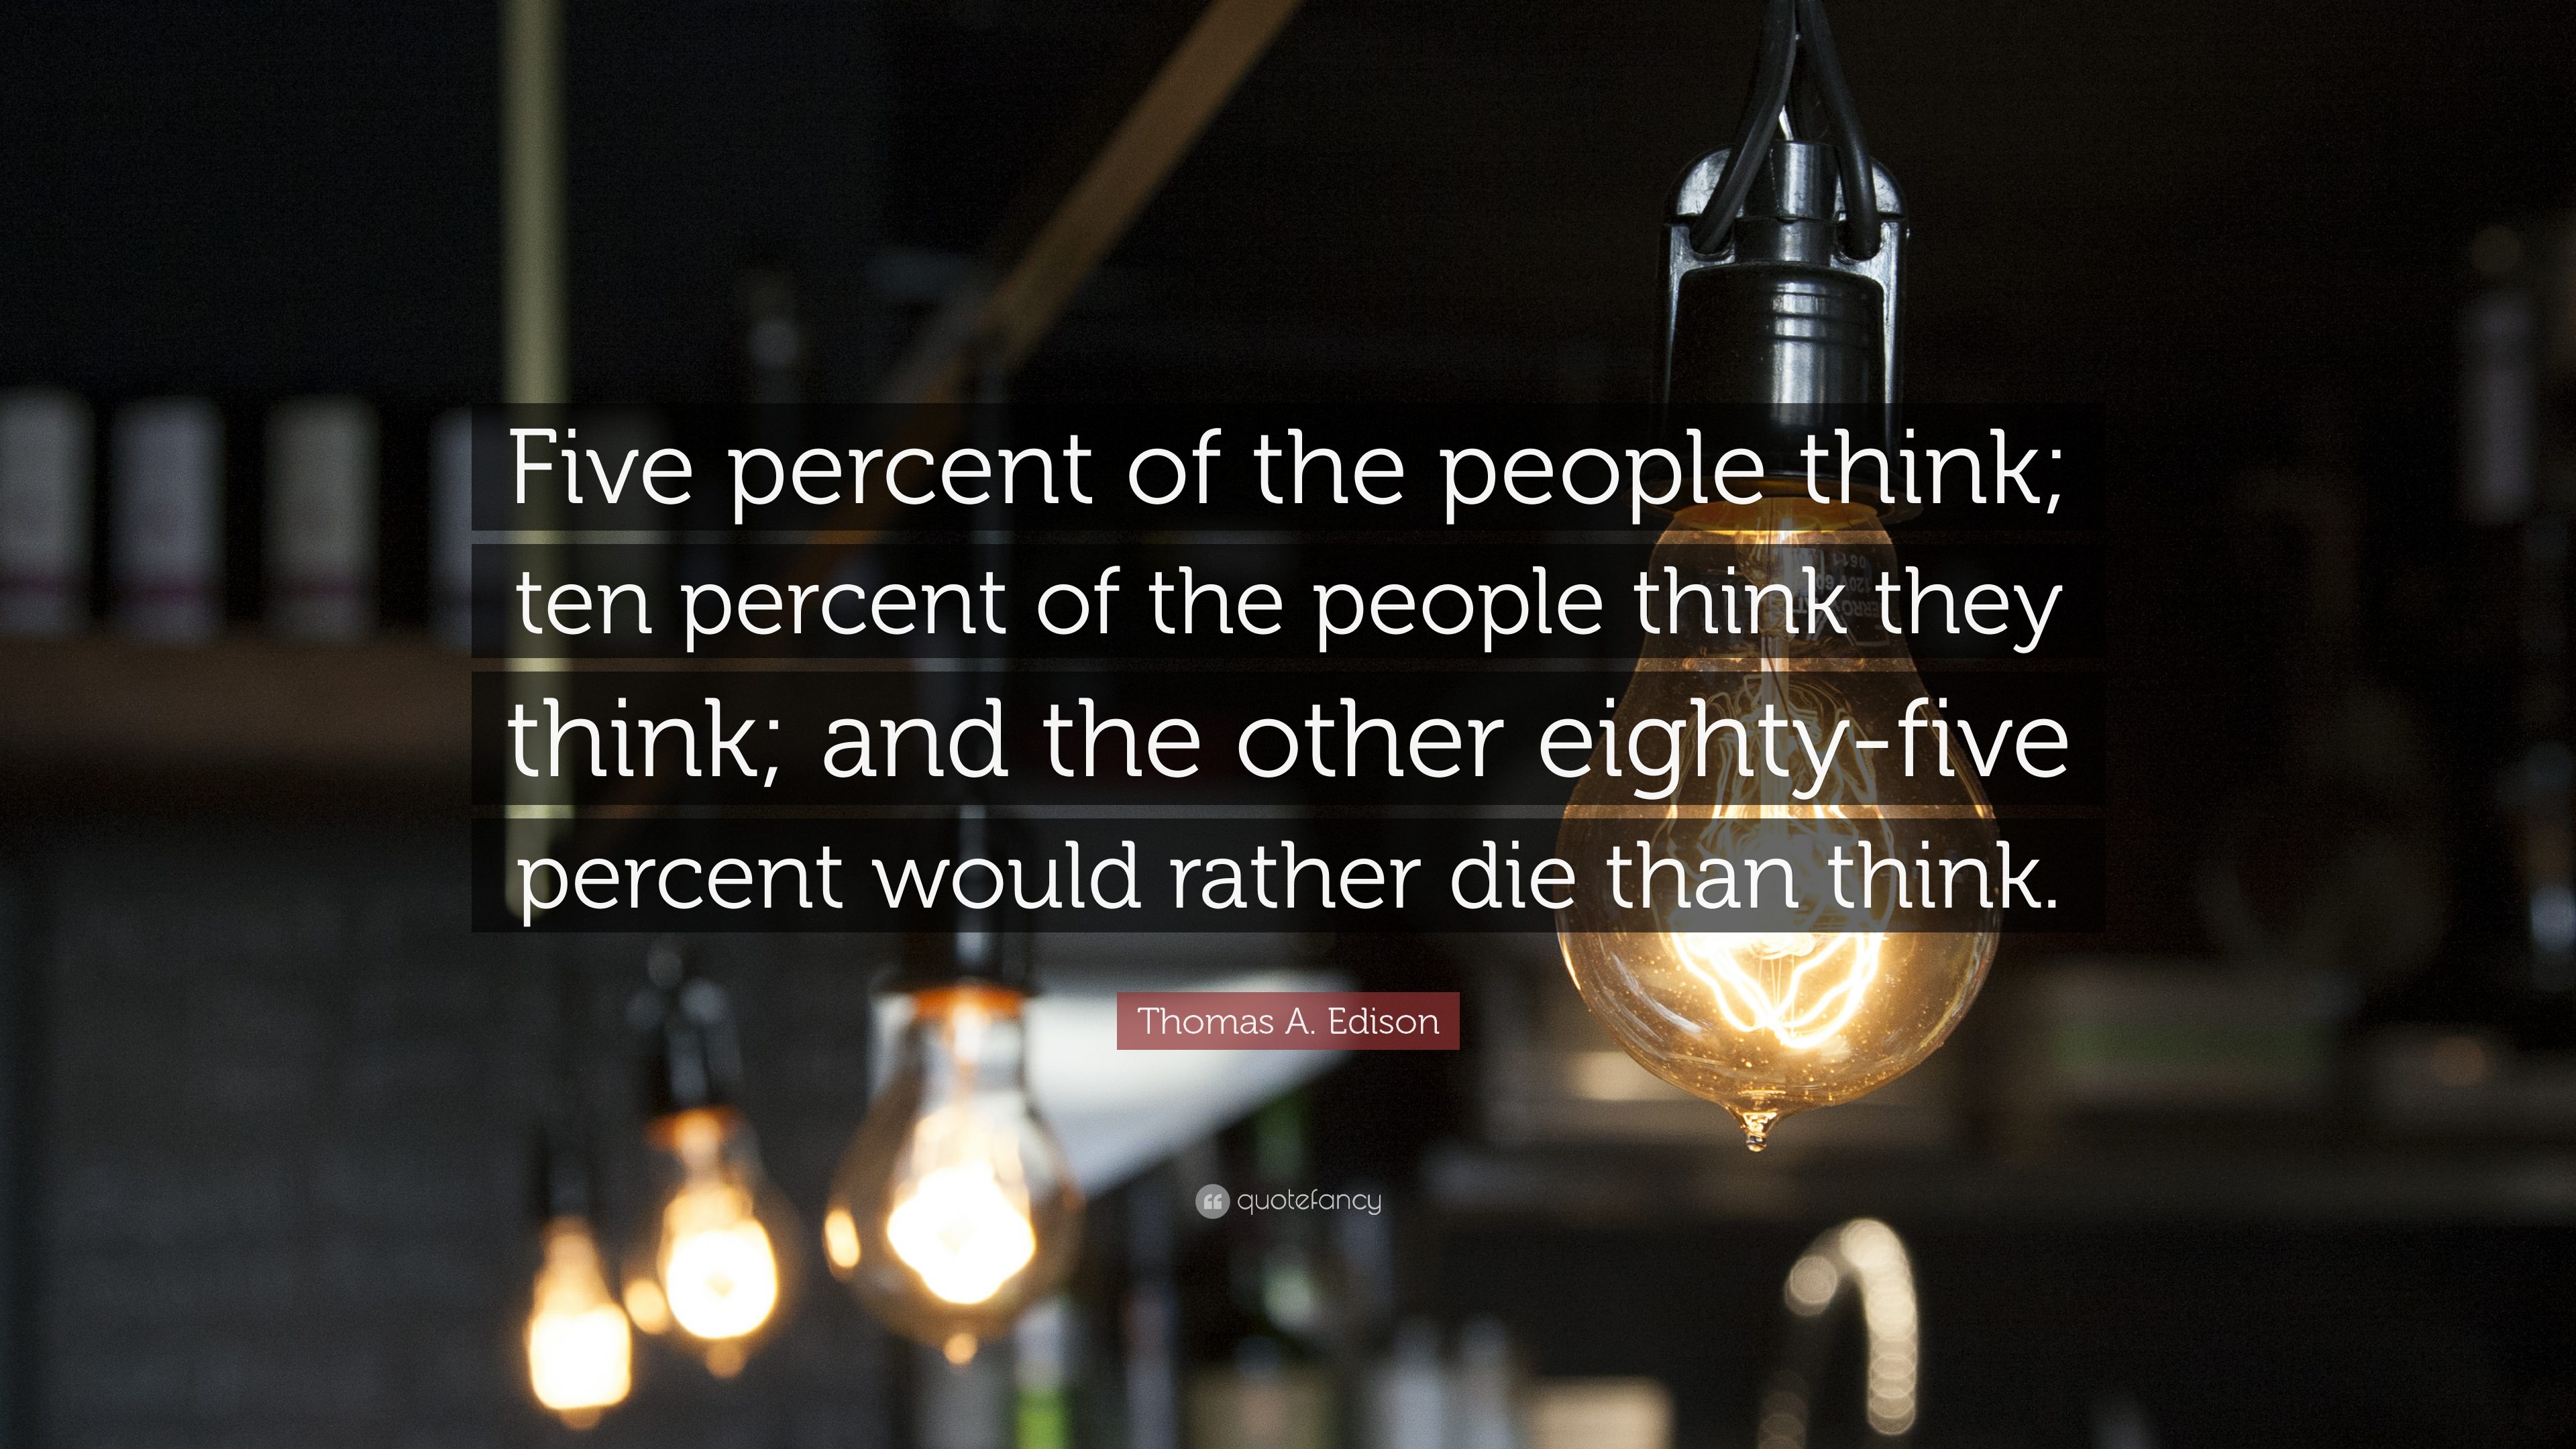 Thomas A. Edison Quote: U201cFive Percent Of The People Think; Ten Percent